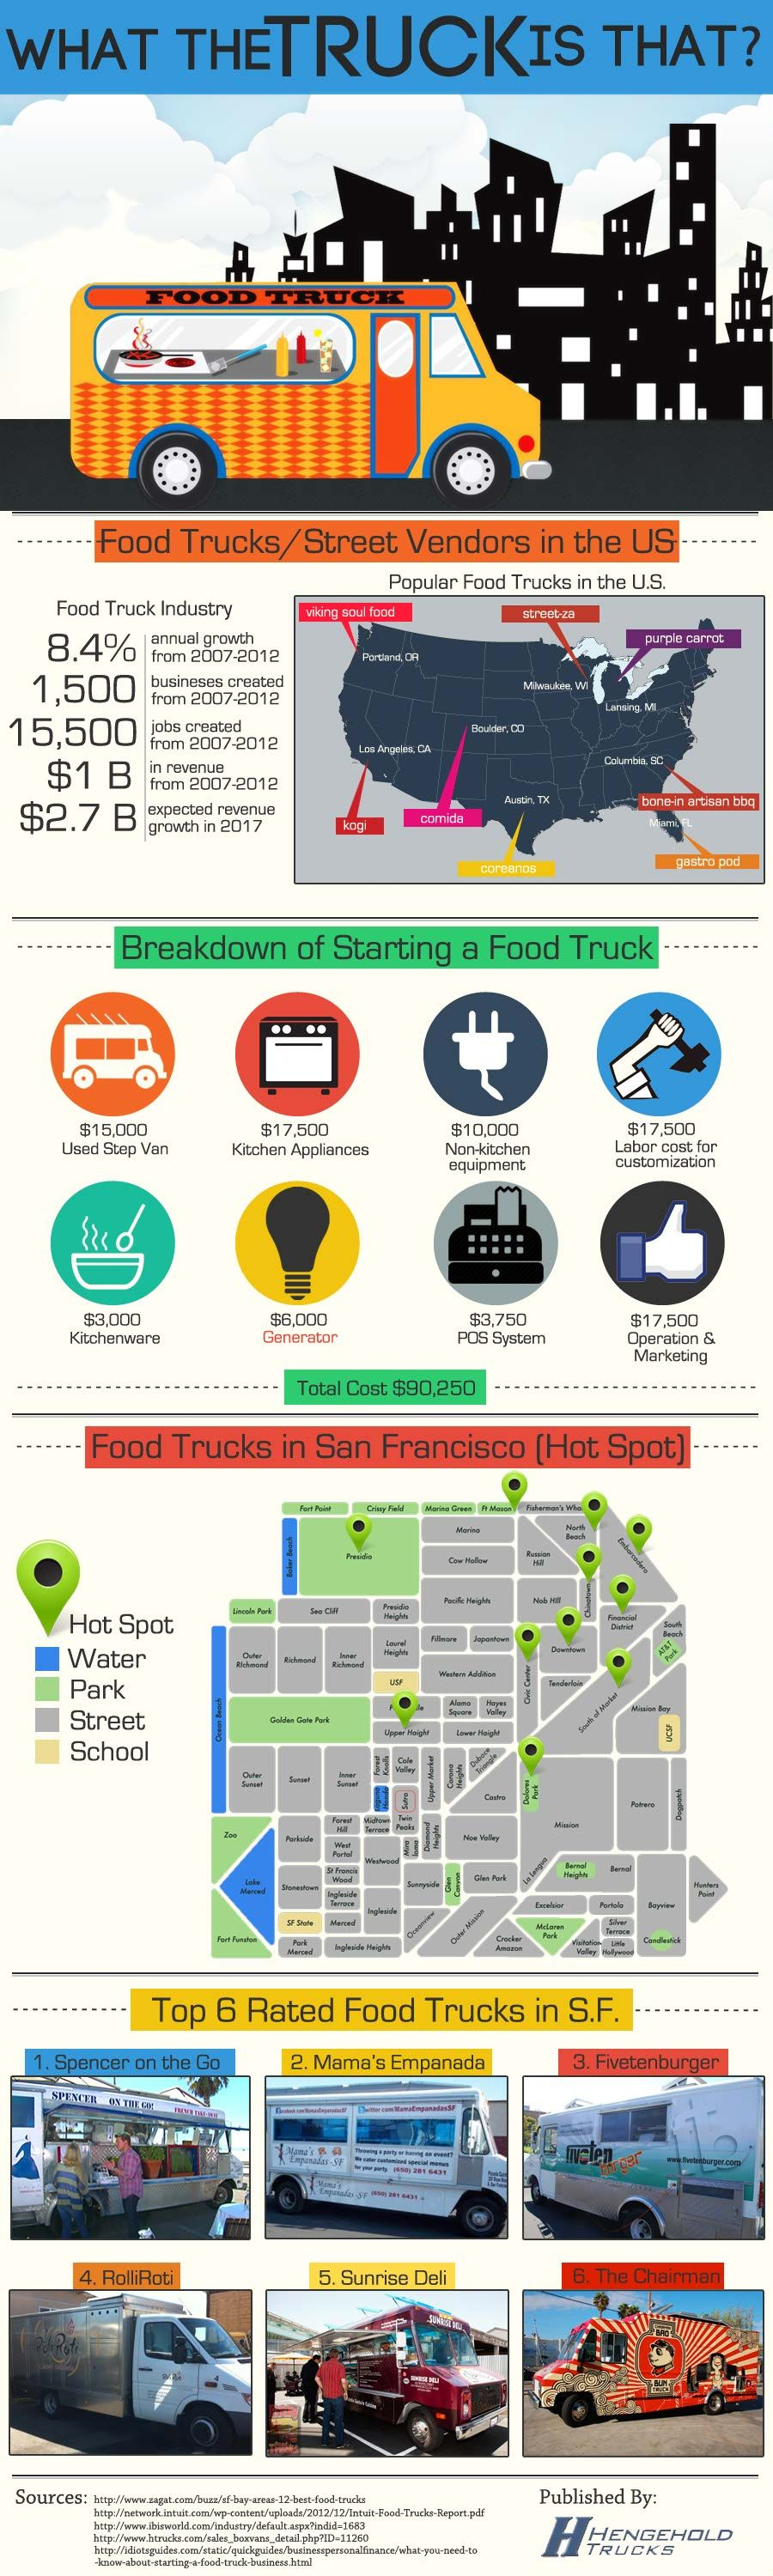 #INFOgraphic > Starting Food Truck Business: Thinking or planning to start your own mobile restaurant? Not a bad idea given that food truck industry has reportedly an annual growth rate of 8,4%. Before you go see how you should hammer your truck and get an idea of how it should look like with a close look at the 6 top rated Food Trucks in... > http://infographicsmania.com/starting-food-truck-business/